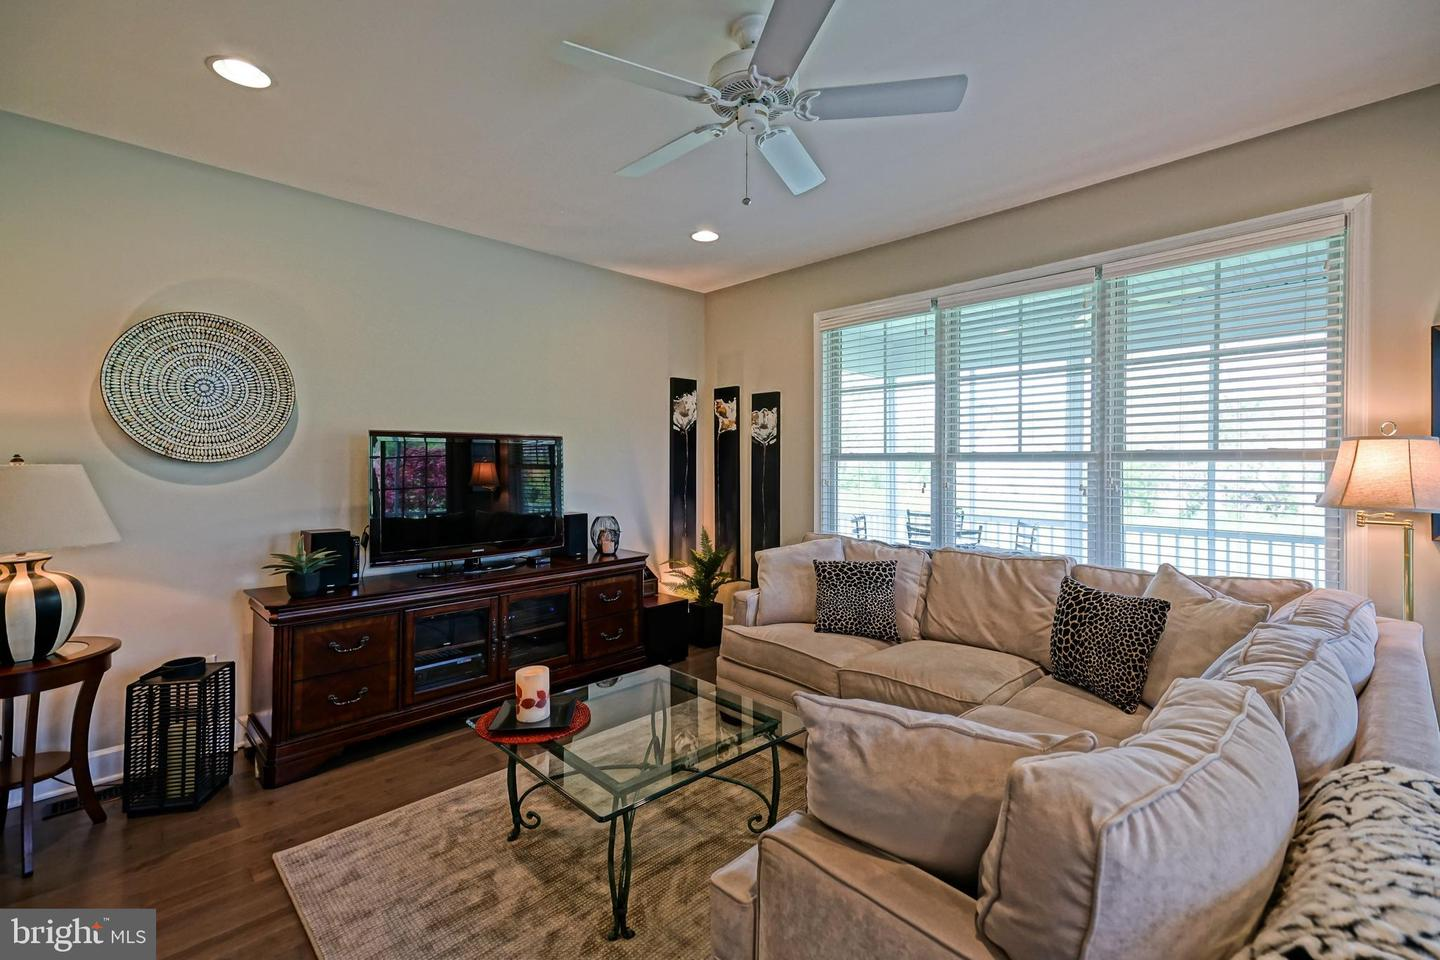 DESU139128-301667381286-2019-08-05-10-43-56 35222 Overfalls Dr N | Lewes, DE Real Estate For Sale | MLS# Desu139128  - Lee Ann Group